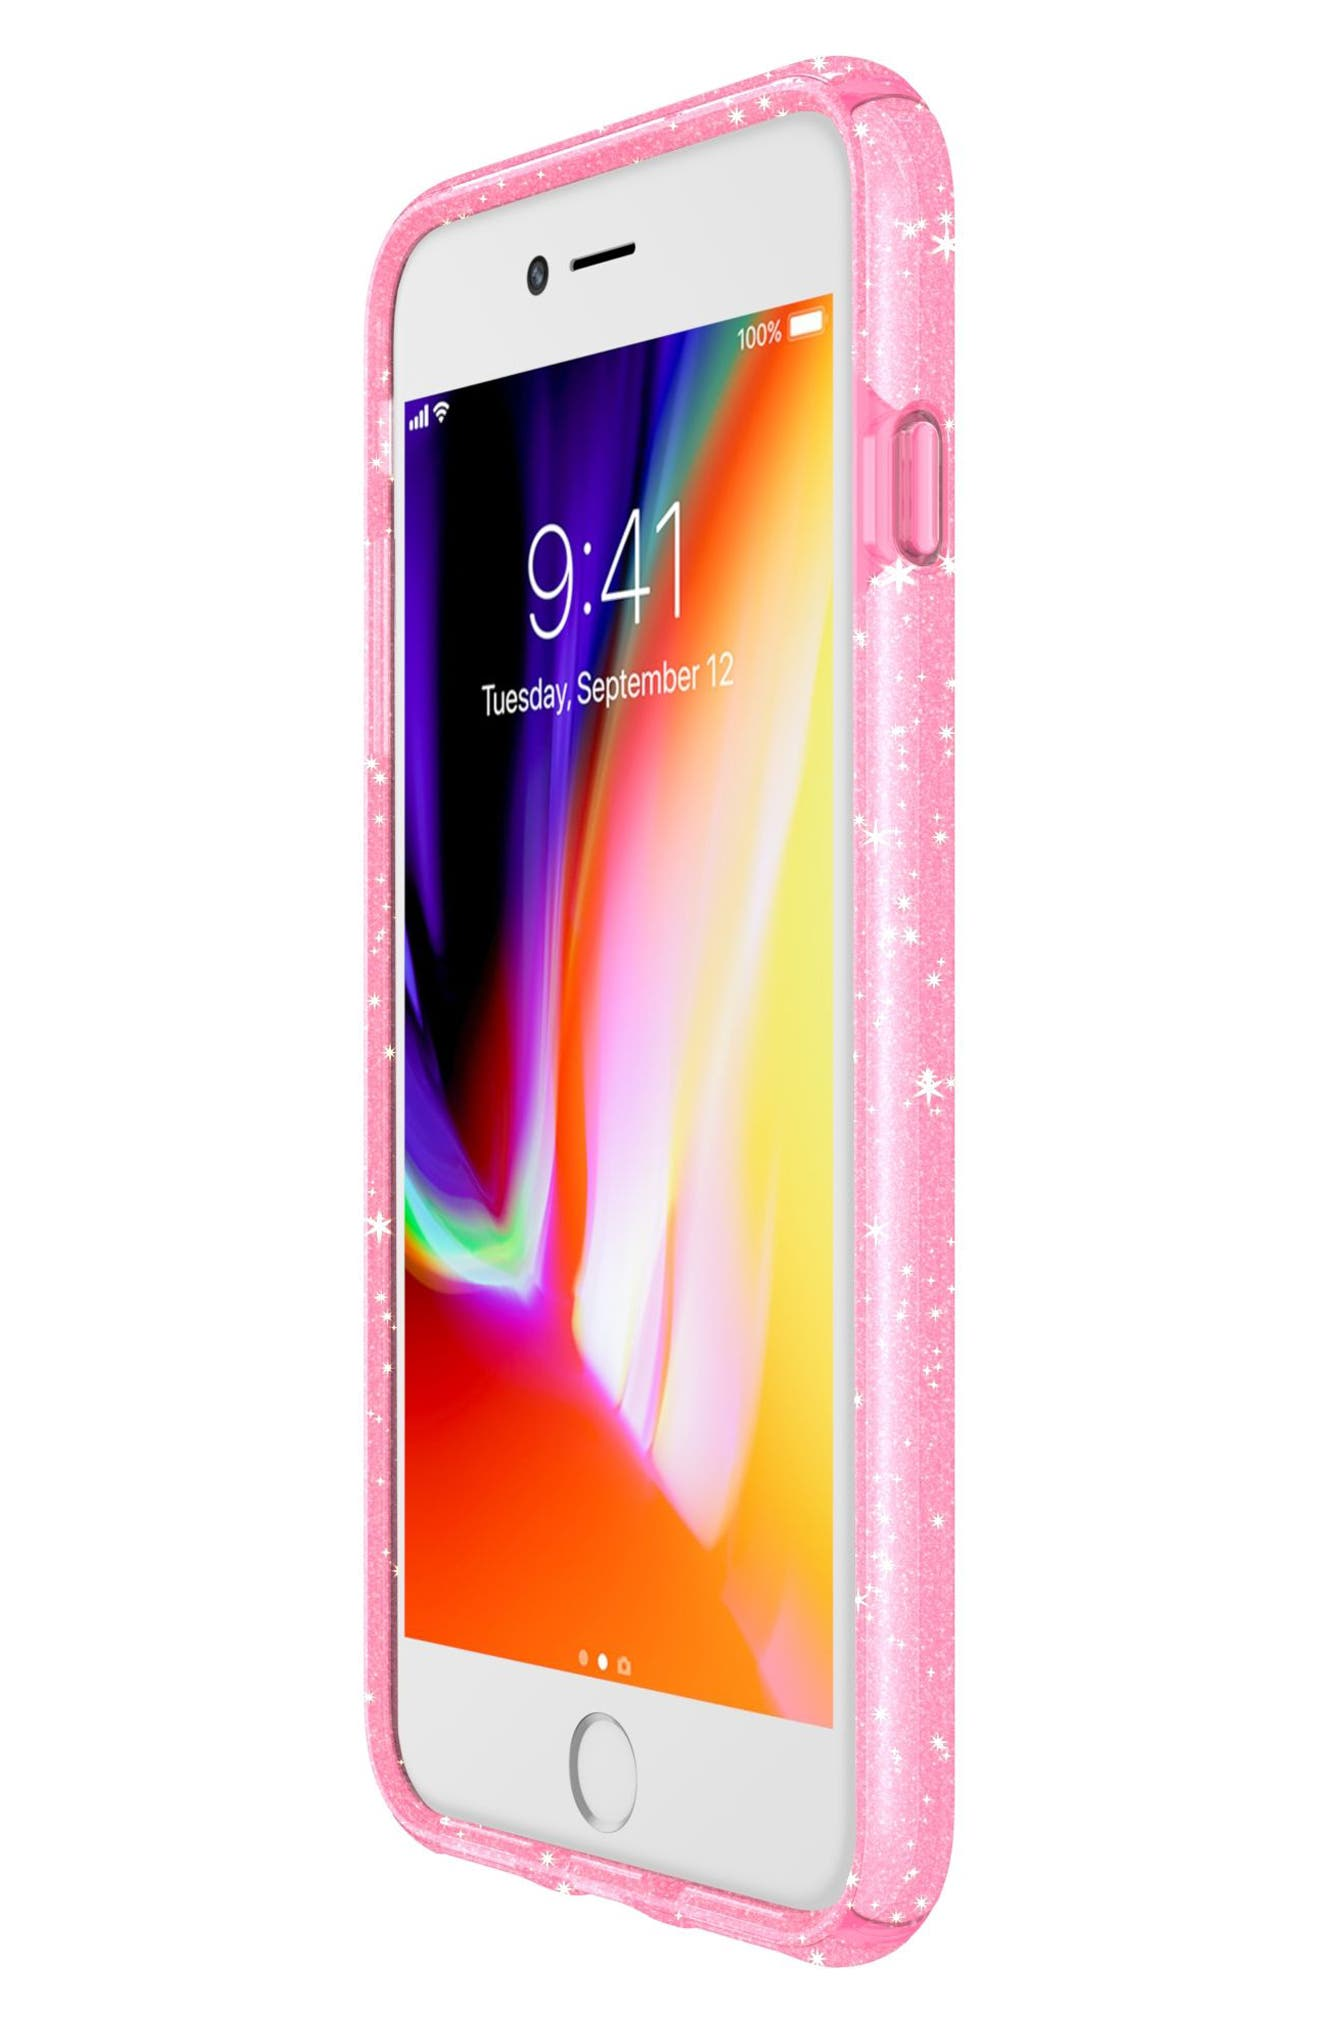 iPhone 6/6s/7/8 Plus Case,                             Alternate thumbnail 7, color,                             Bella Pink Gold Glitter/ Pink